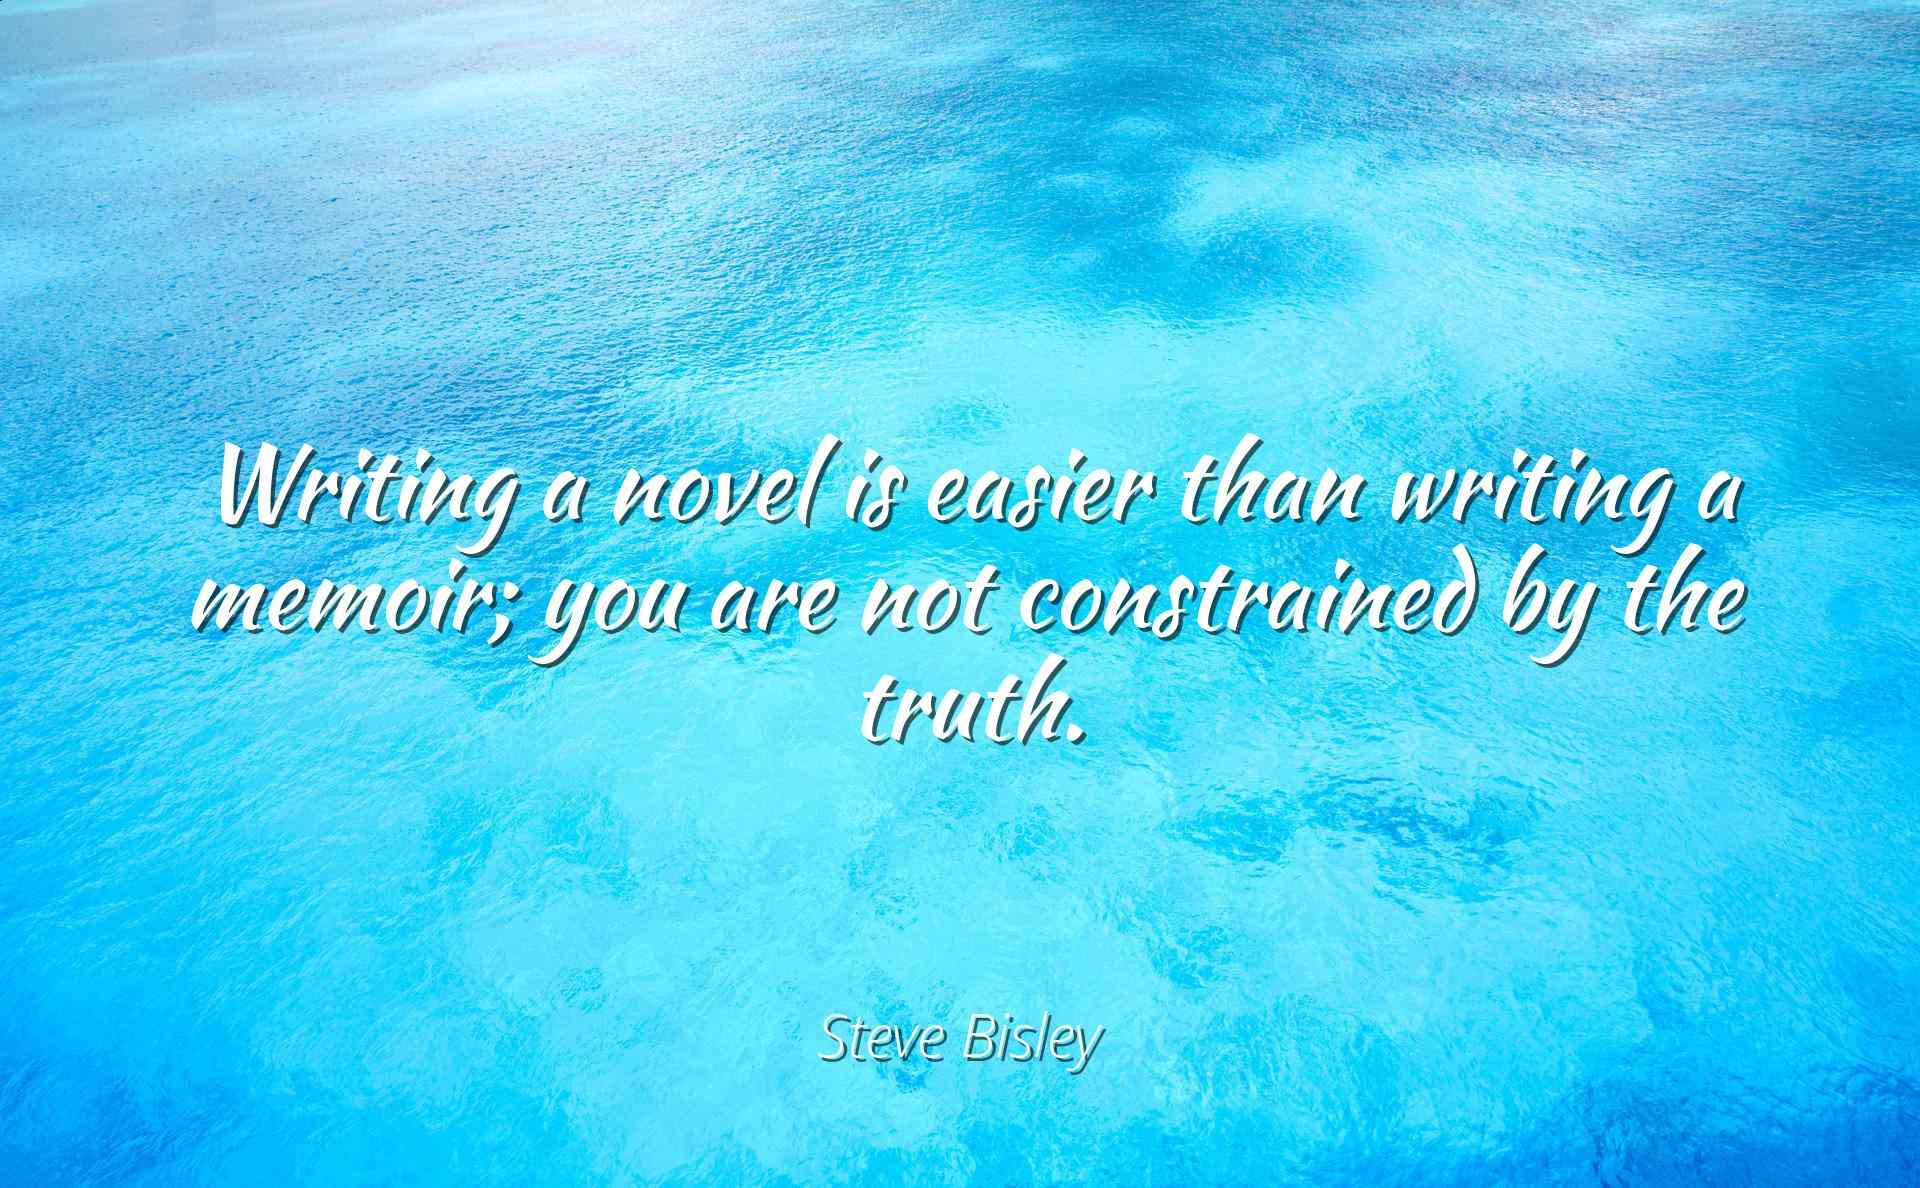 Steve Bisley Writing a novel is easier than writing a memoir; you are not constrained by the truth Famous Quotes... by